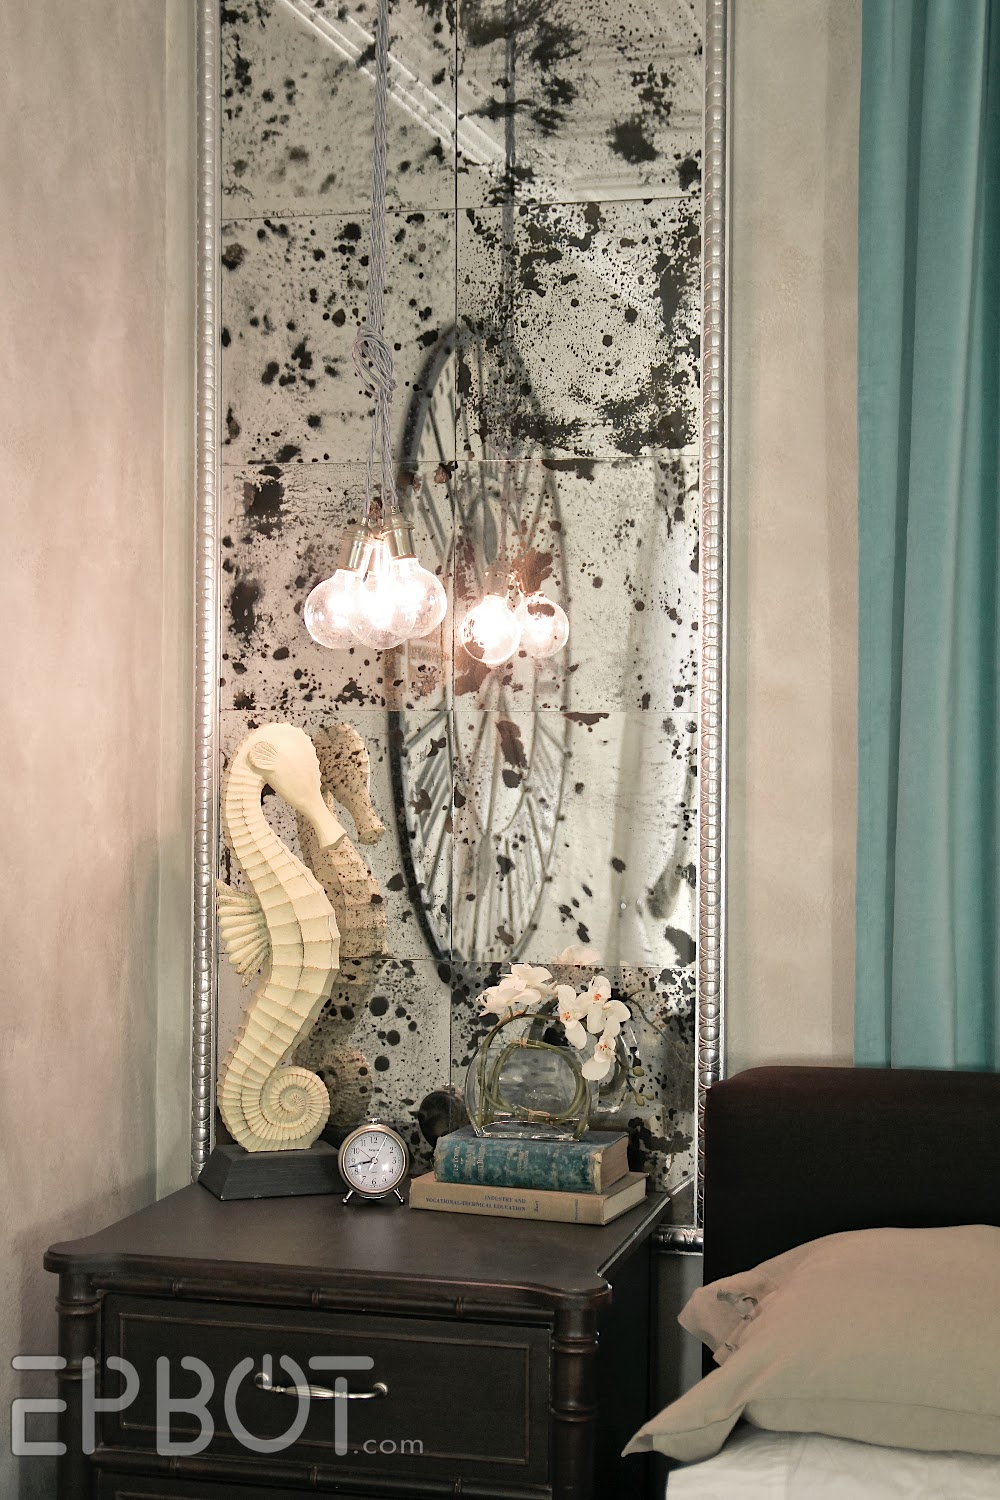 EPBOT DIY Antiqued Mirror Wall Panels Or Fun With Muriatic Acid